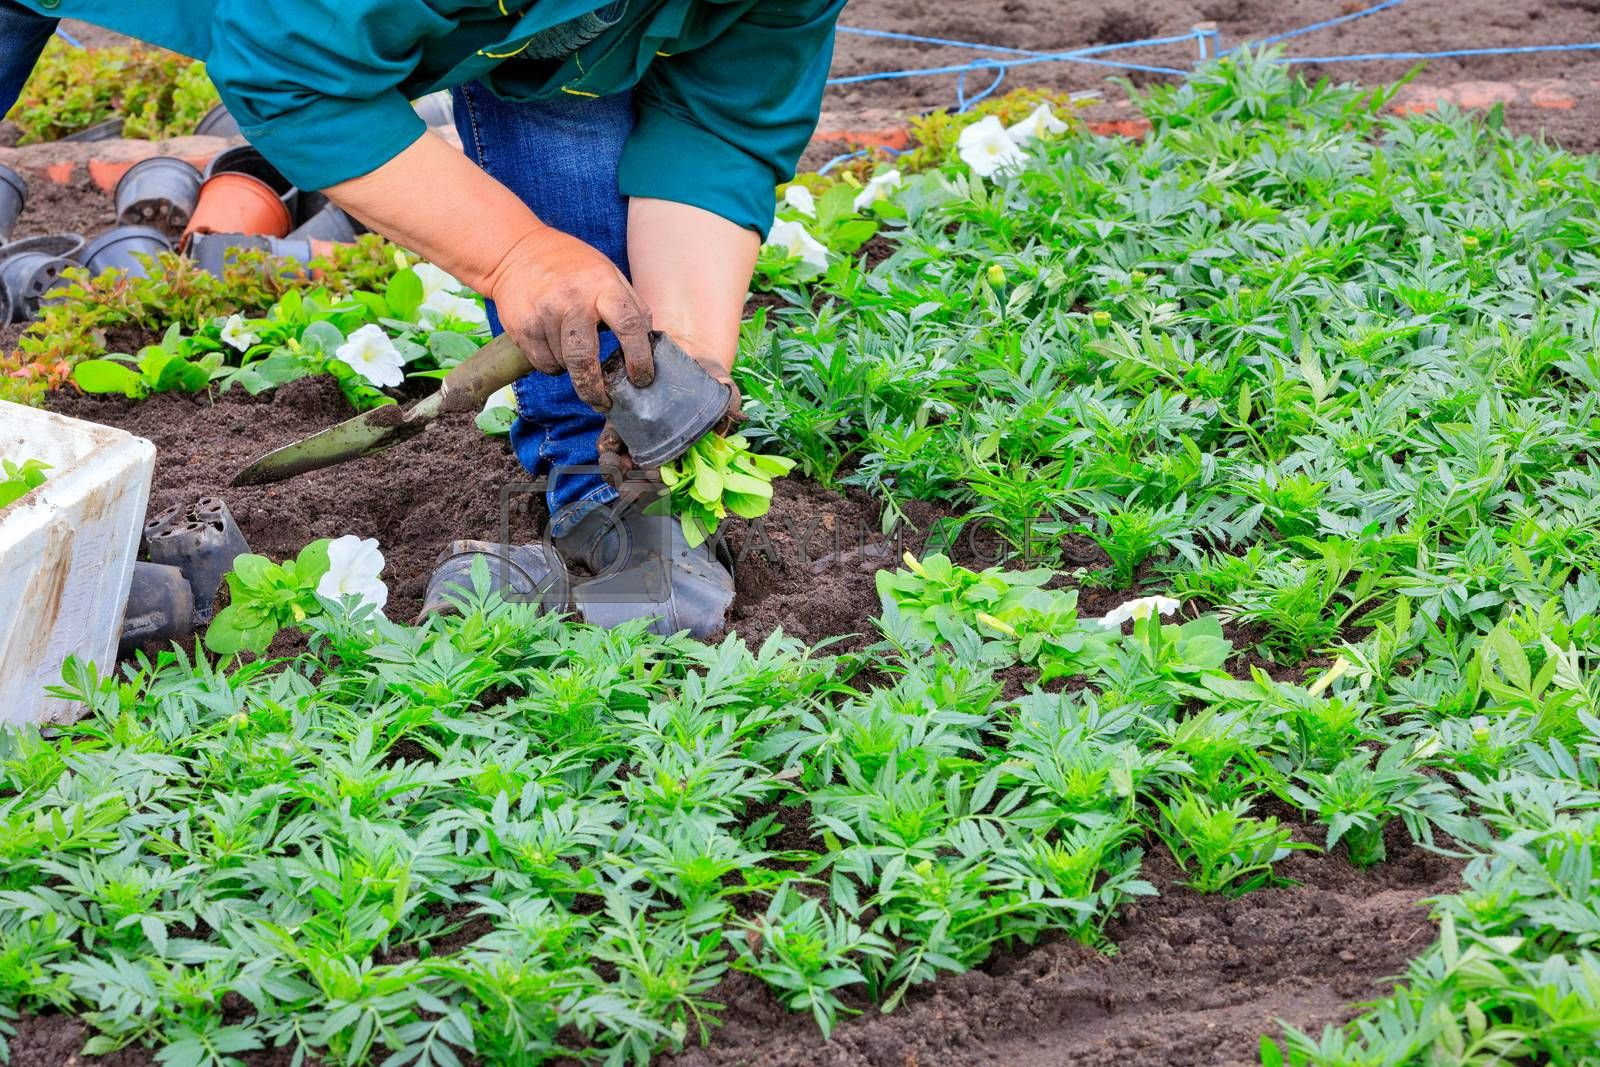 Using a scoop, the farmer plants seedlings of flowers in the flowerbed, pulling them out of small plastic pots and planting them in the ground.